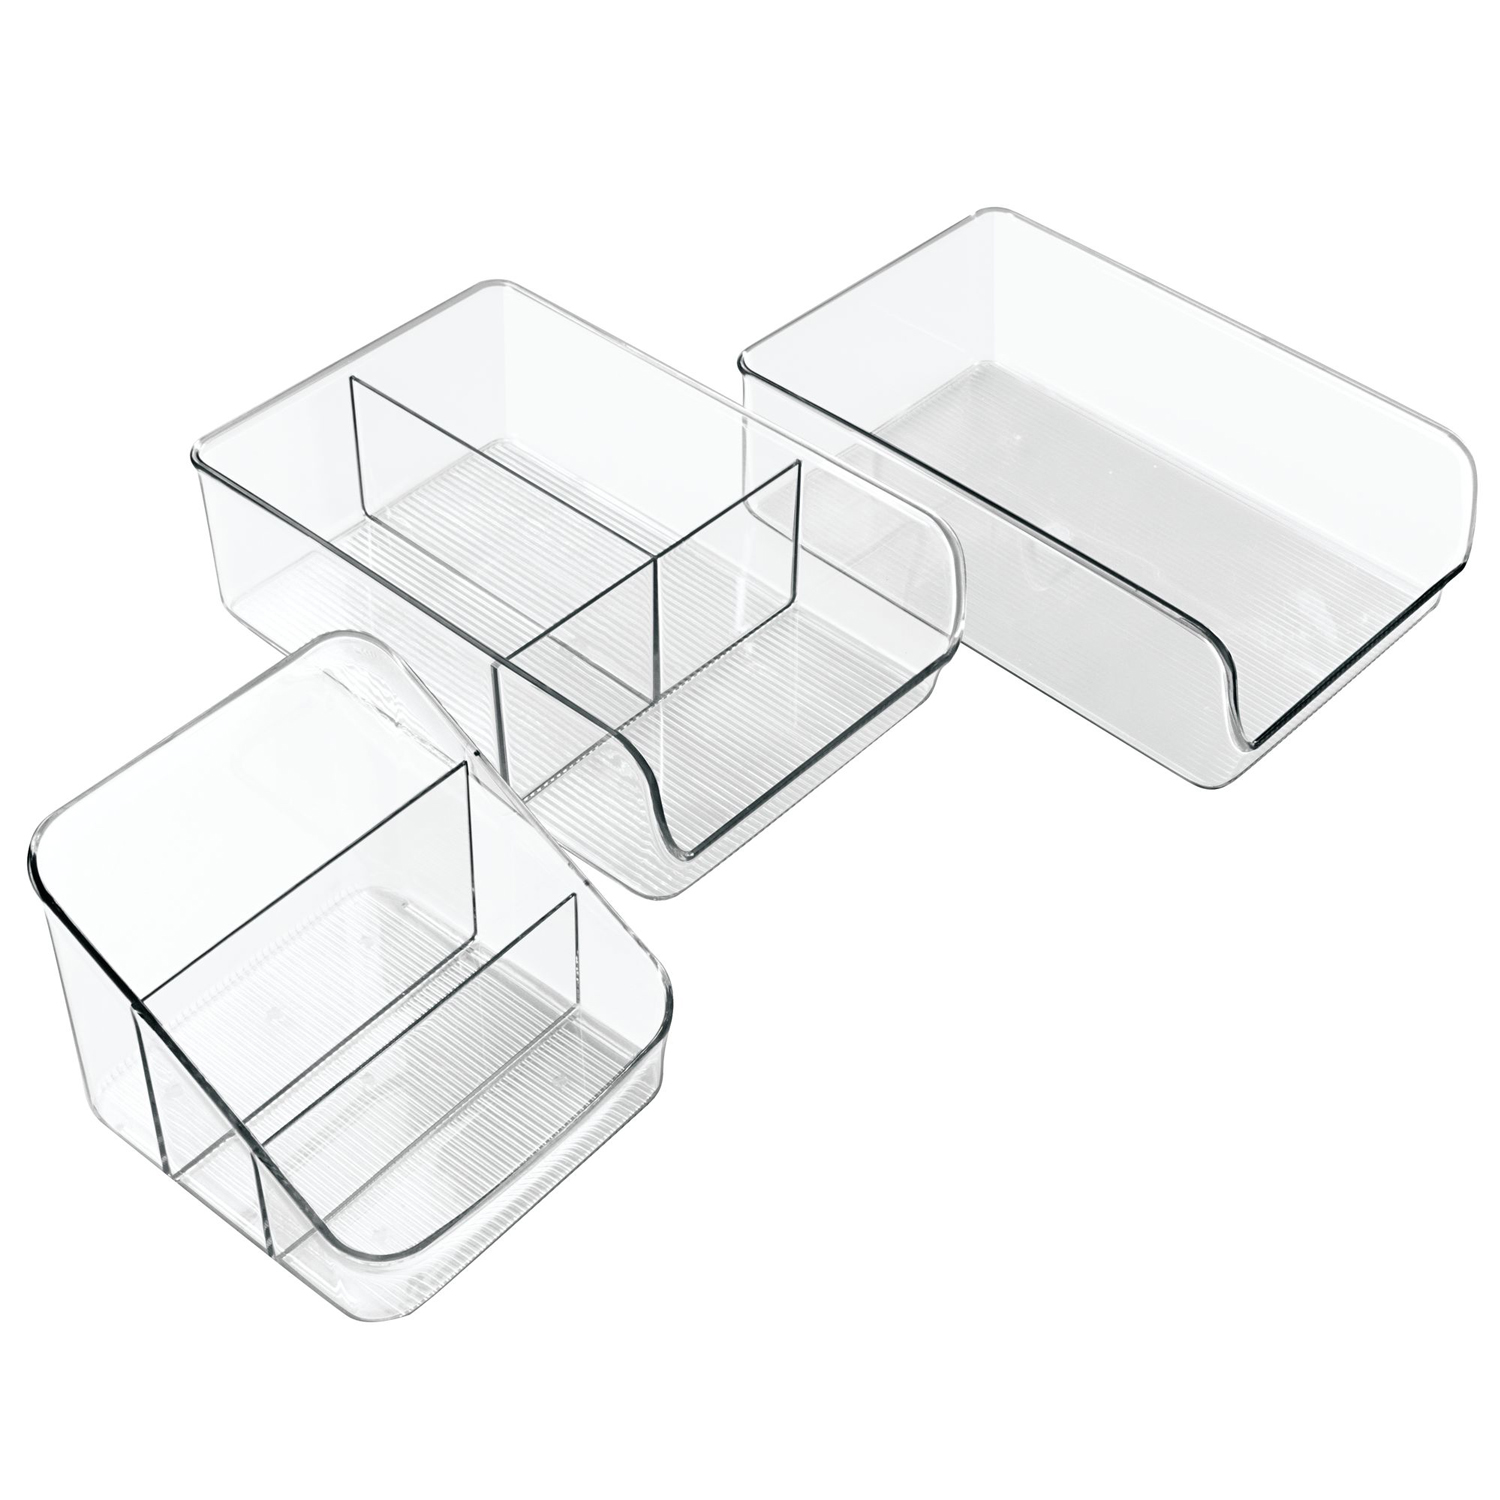 InterDesign Kitchen Storage and Organization Bins, Set of 3, Clear